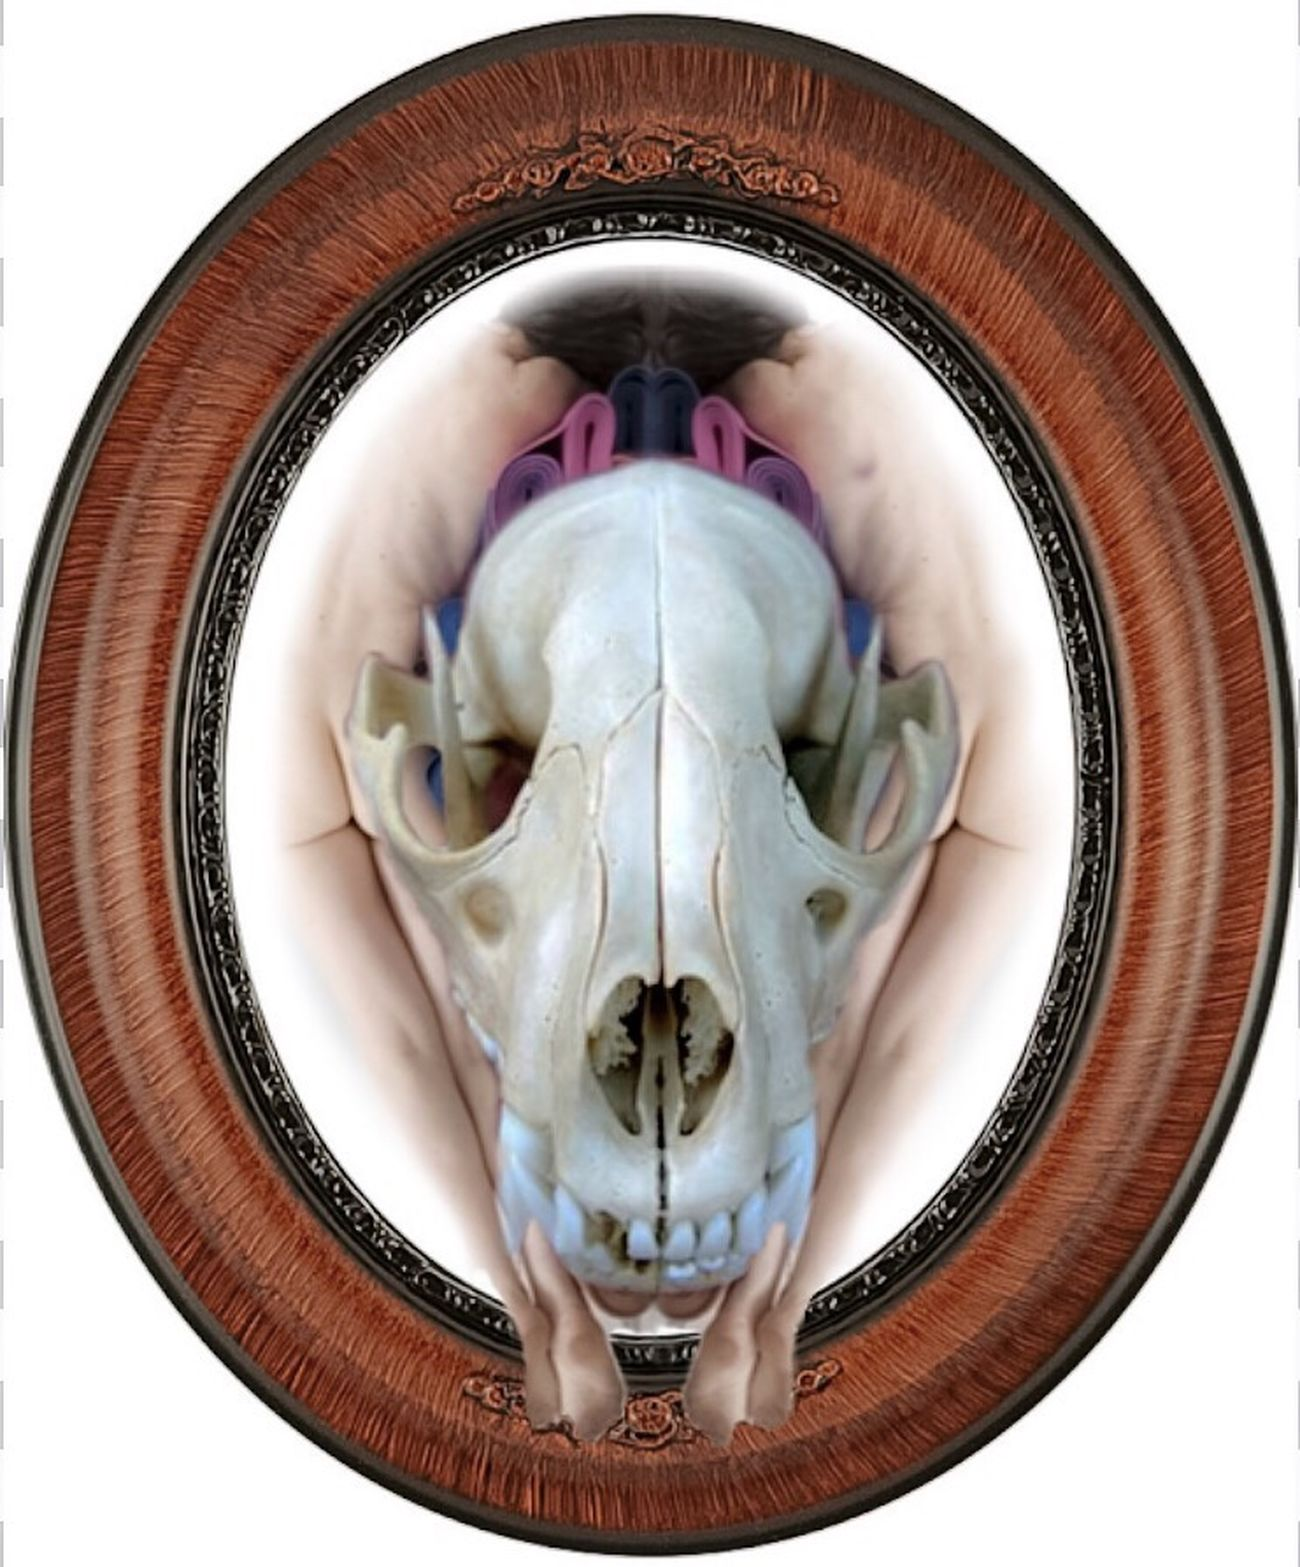 Devolution Photographic Approximation Human Condition Facial Experiments Is Anything Out There Real? Forgotten Dreams New Nightmares Splinters Of Reality